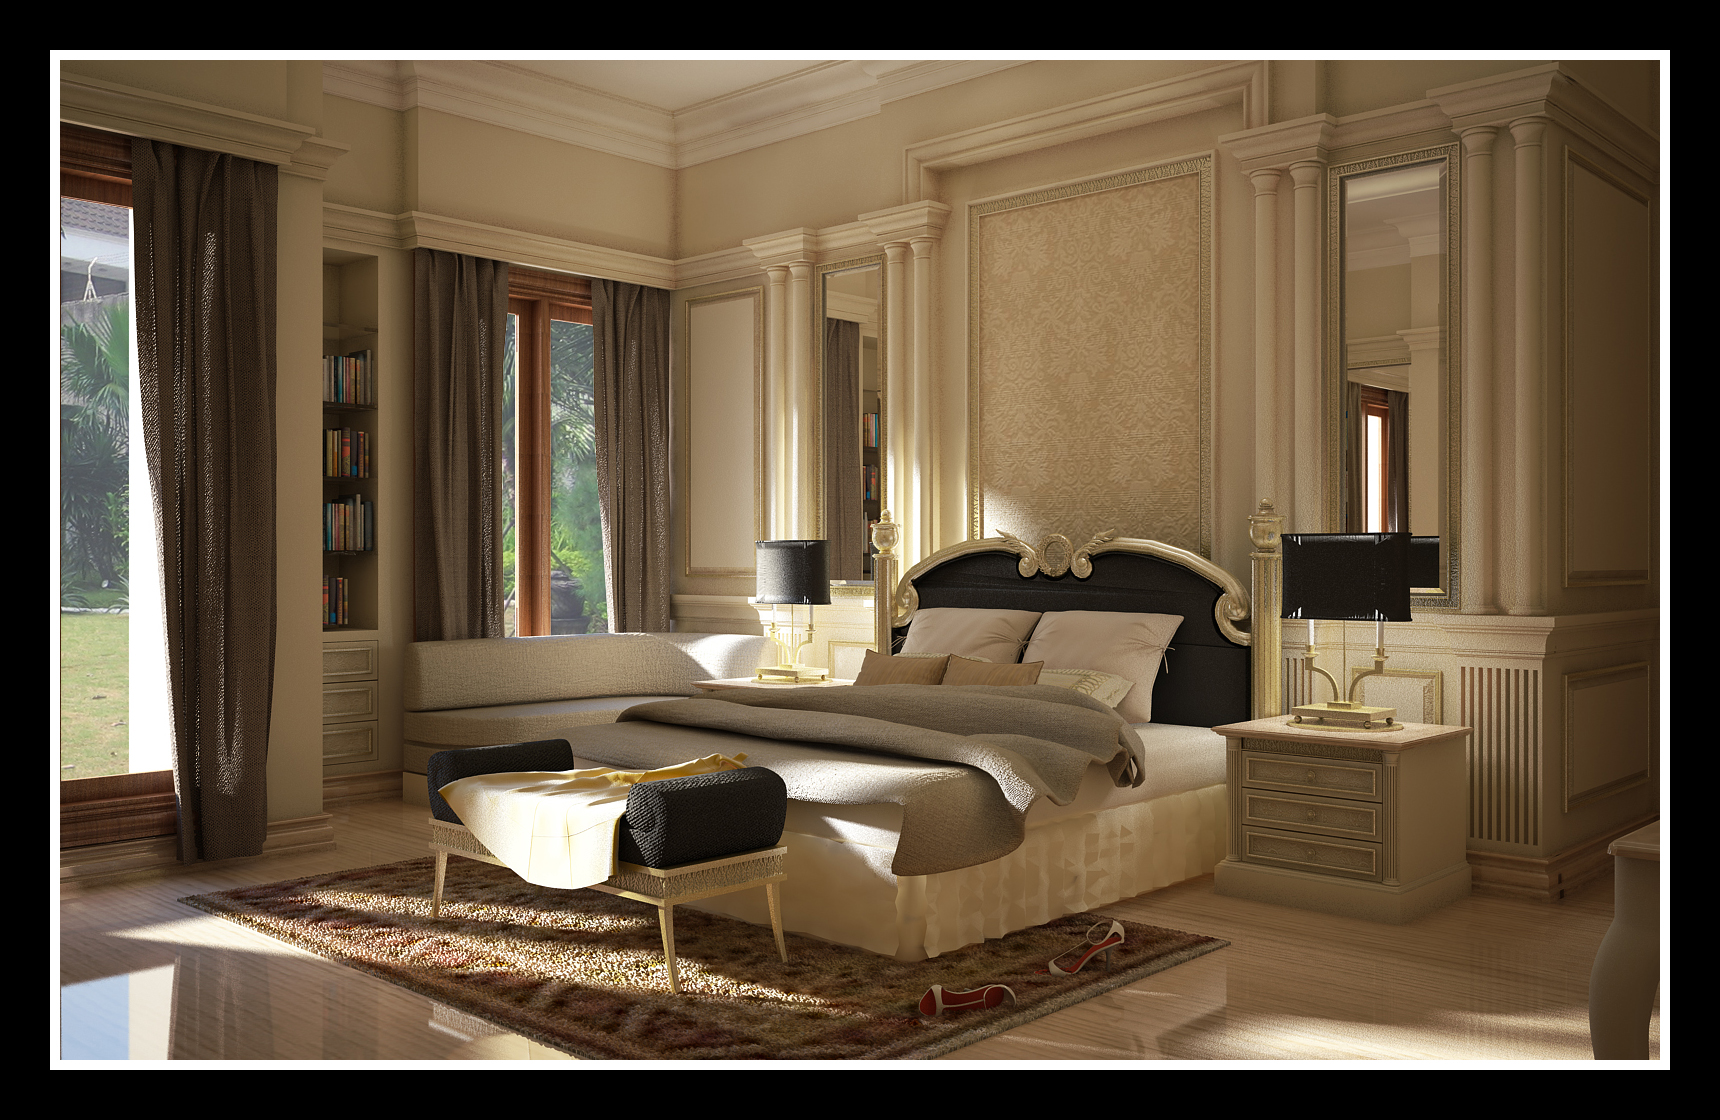 classic bedroom decorating ideas | Classic Interior Design